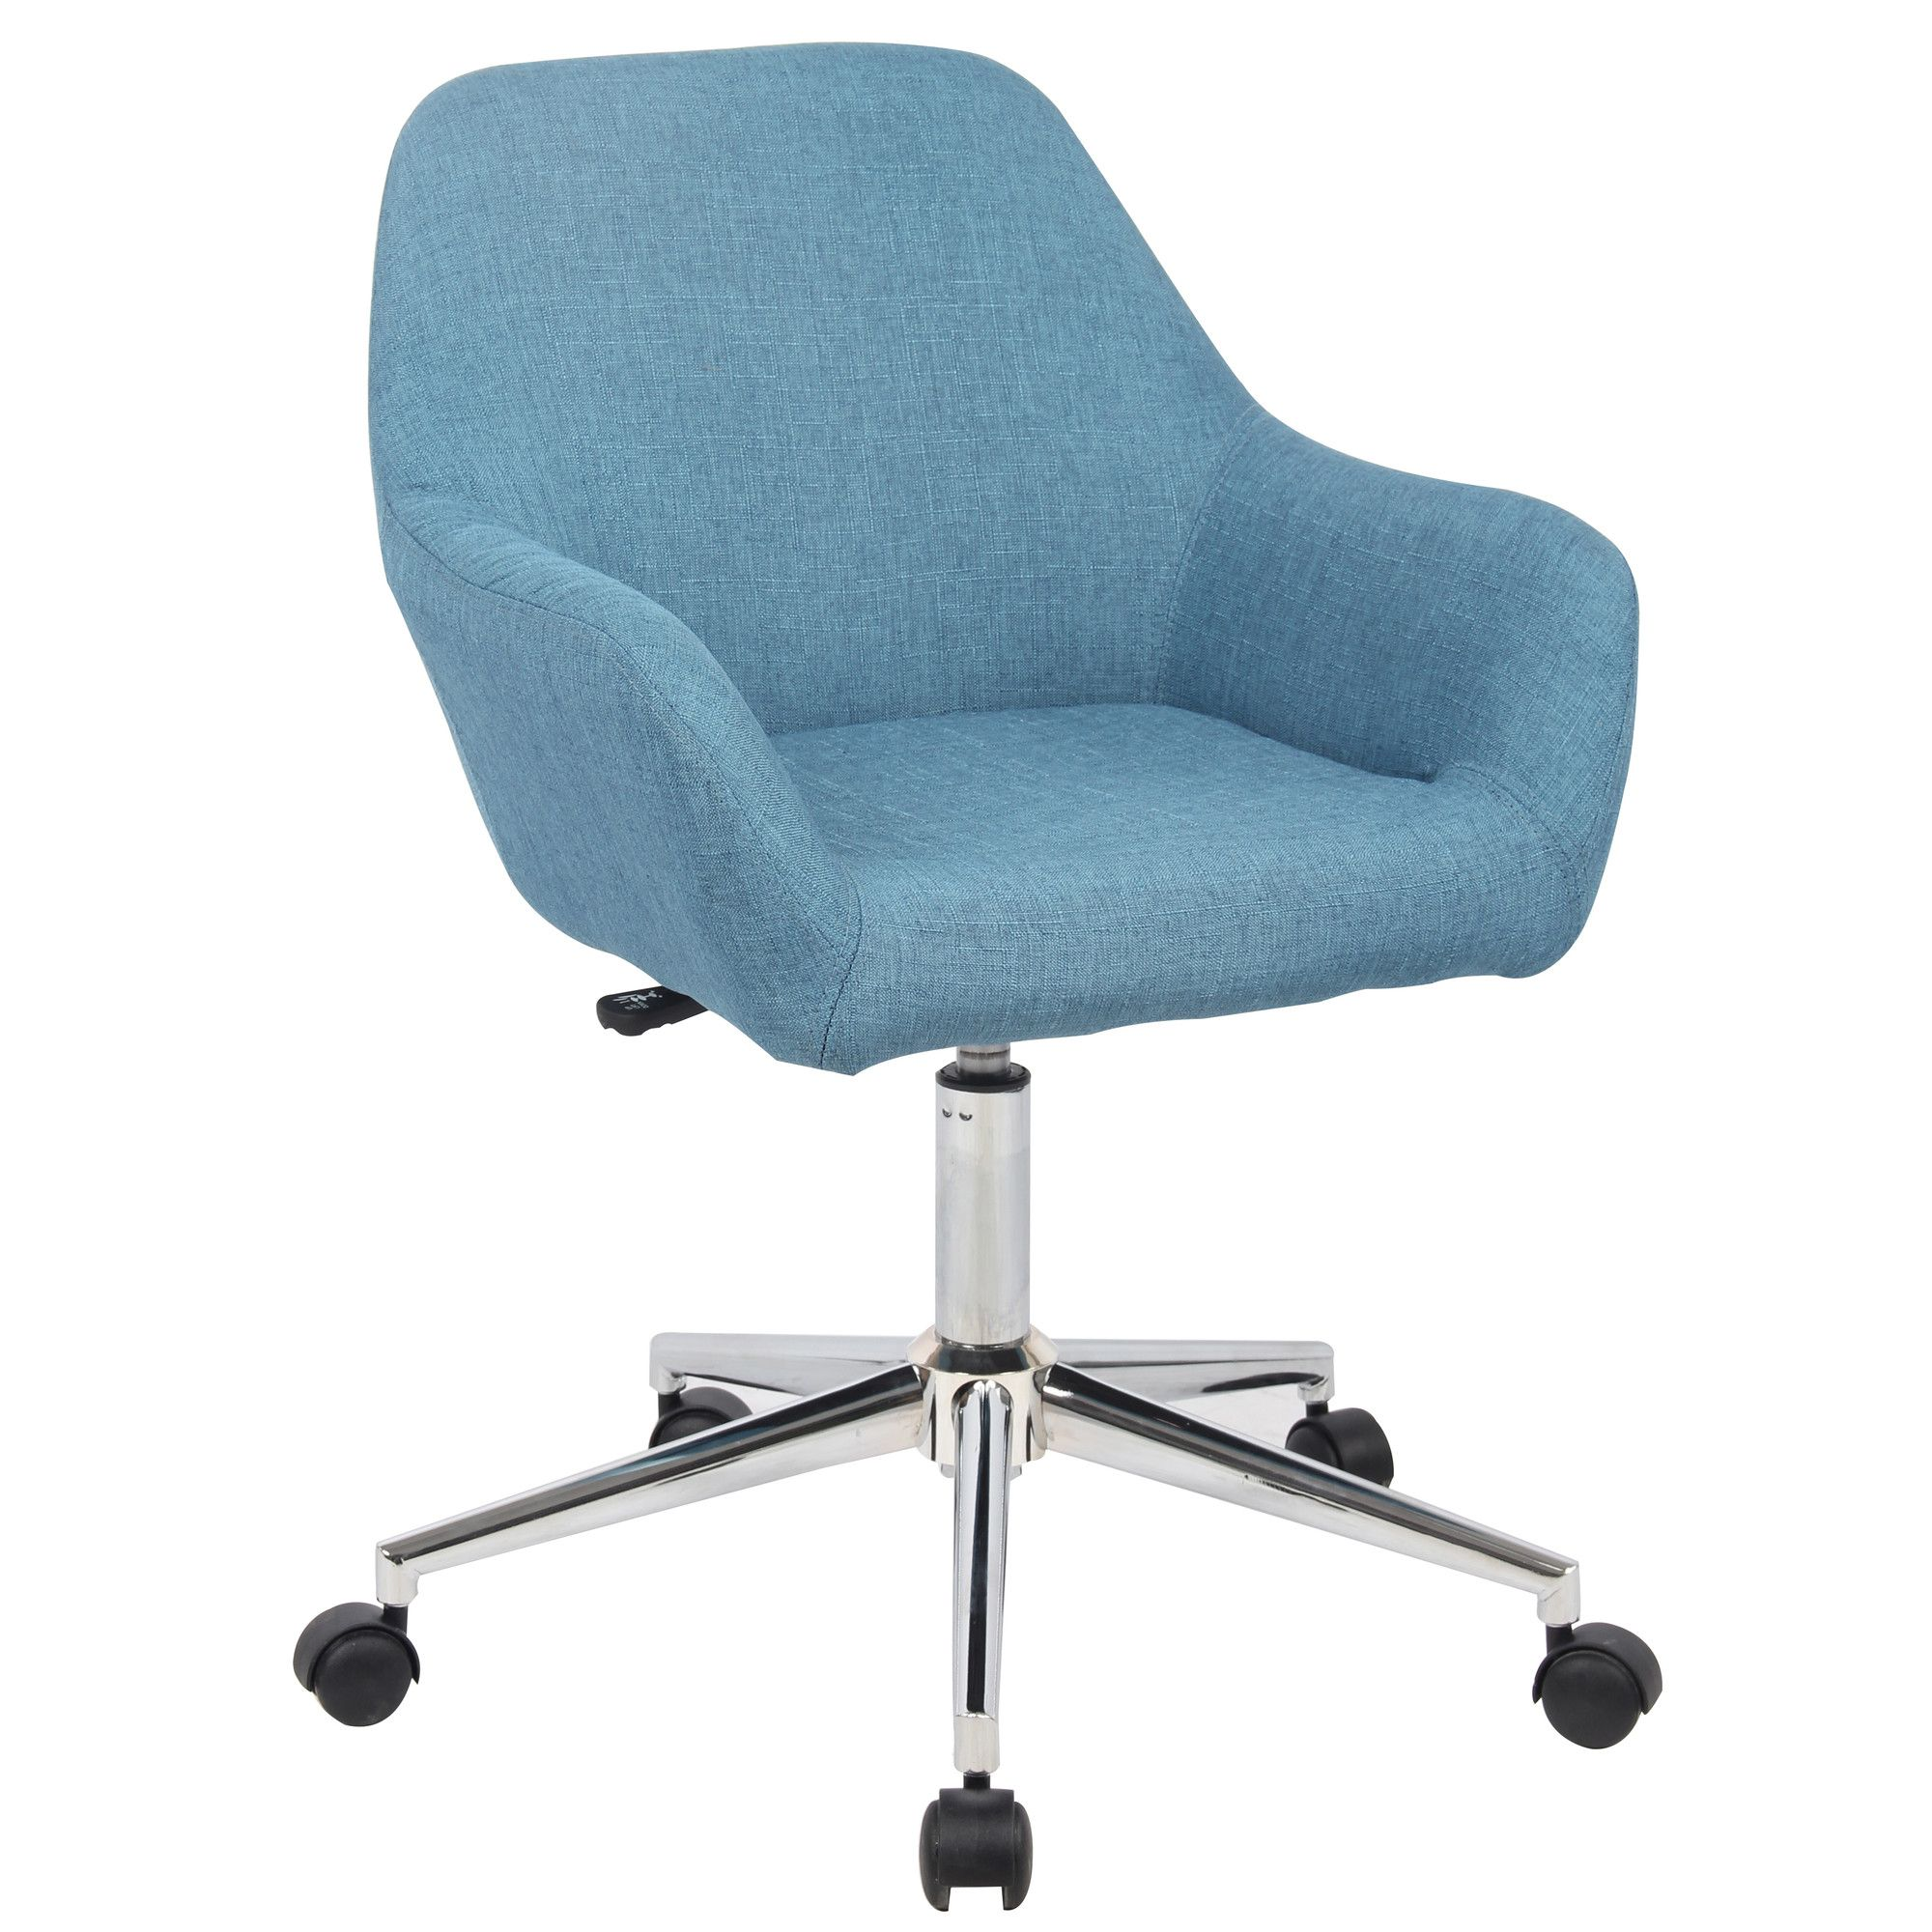 Features High Quality Fabric Chrome Base Caster Wheels Upholstered Product Type D Luxury Office Chairs Upholstered Office Chair Office Chair Design